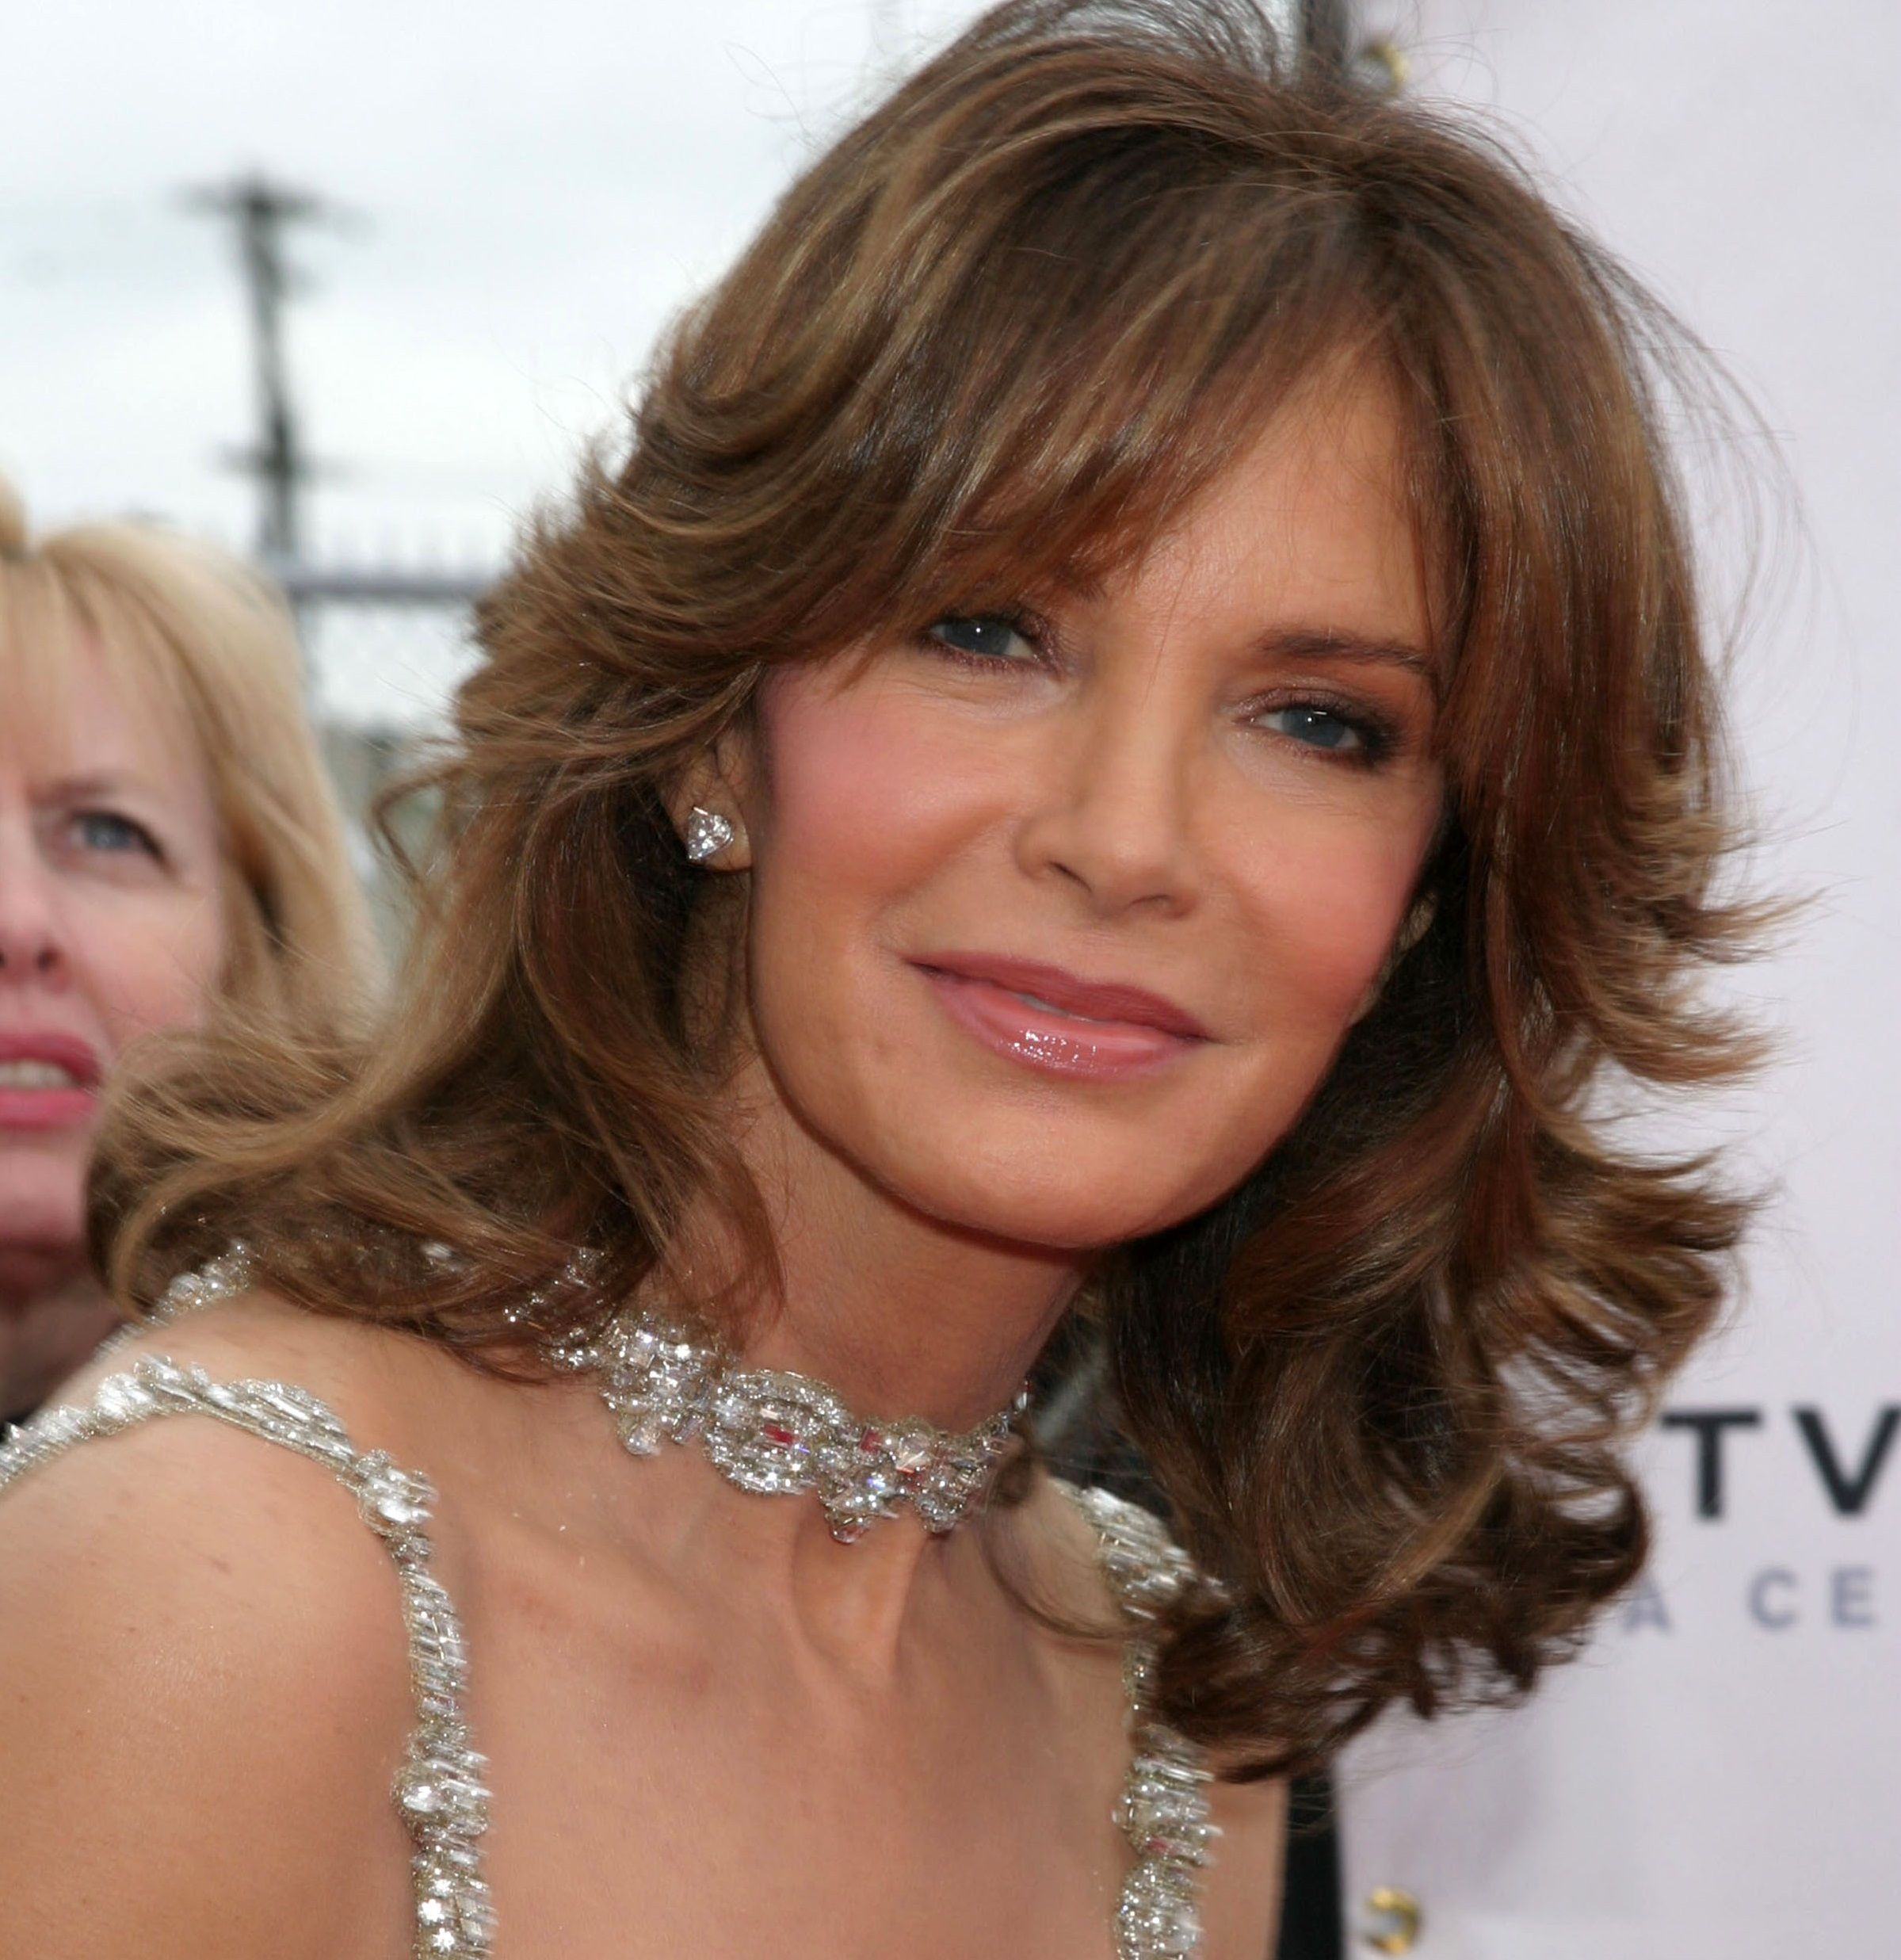 Jaclyn Smith Today 2017 Jaclyn Smith Family Photos Husband Net